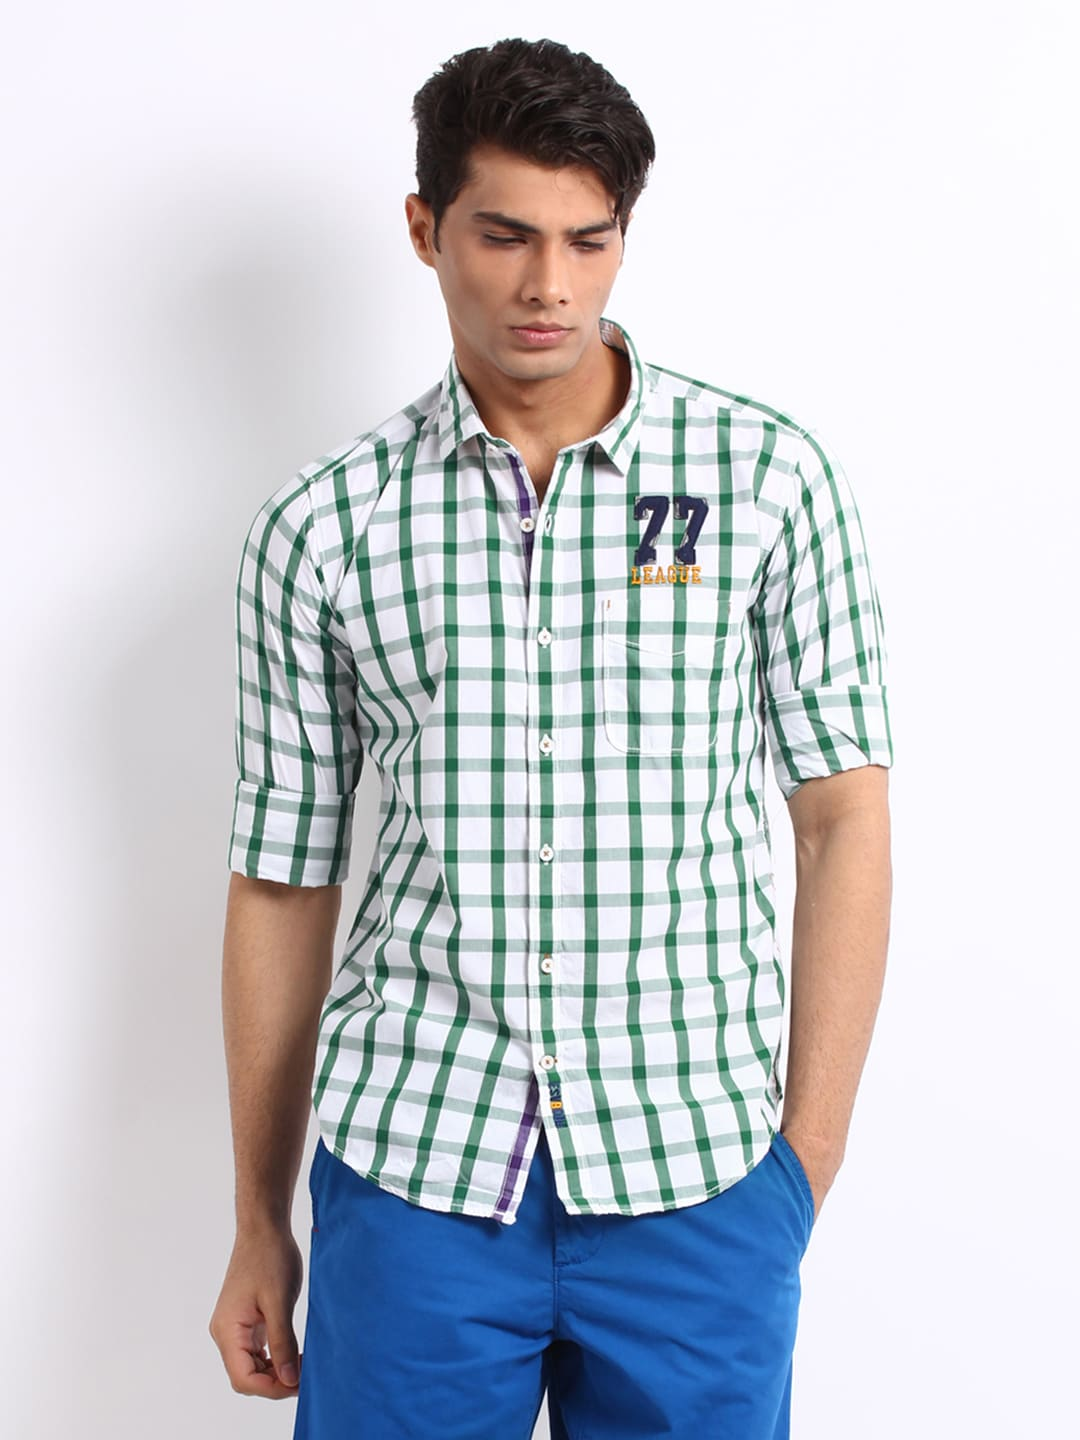 Probase Probase Men Green And White Casual Slim Fit Shirt (Multicolor)